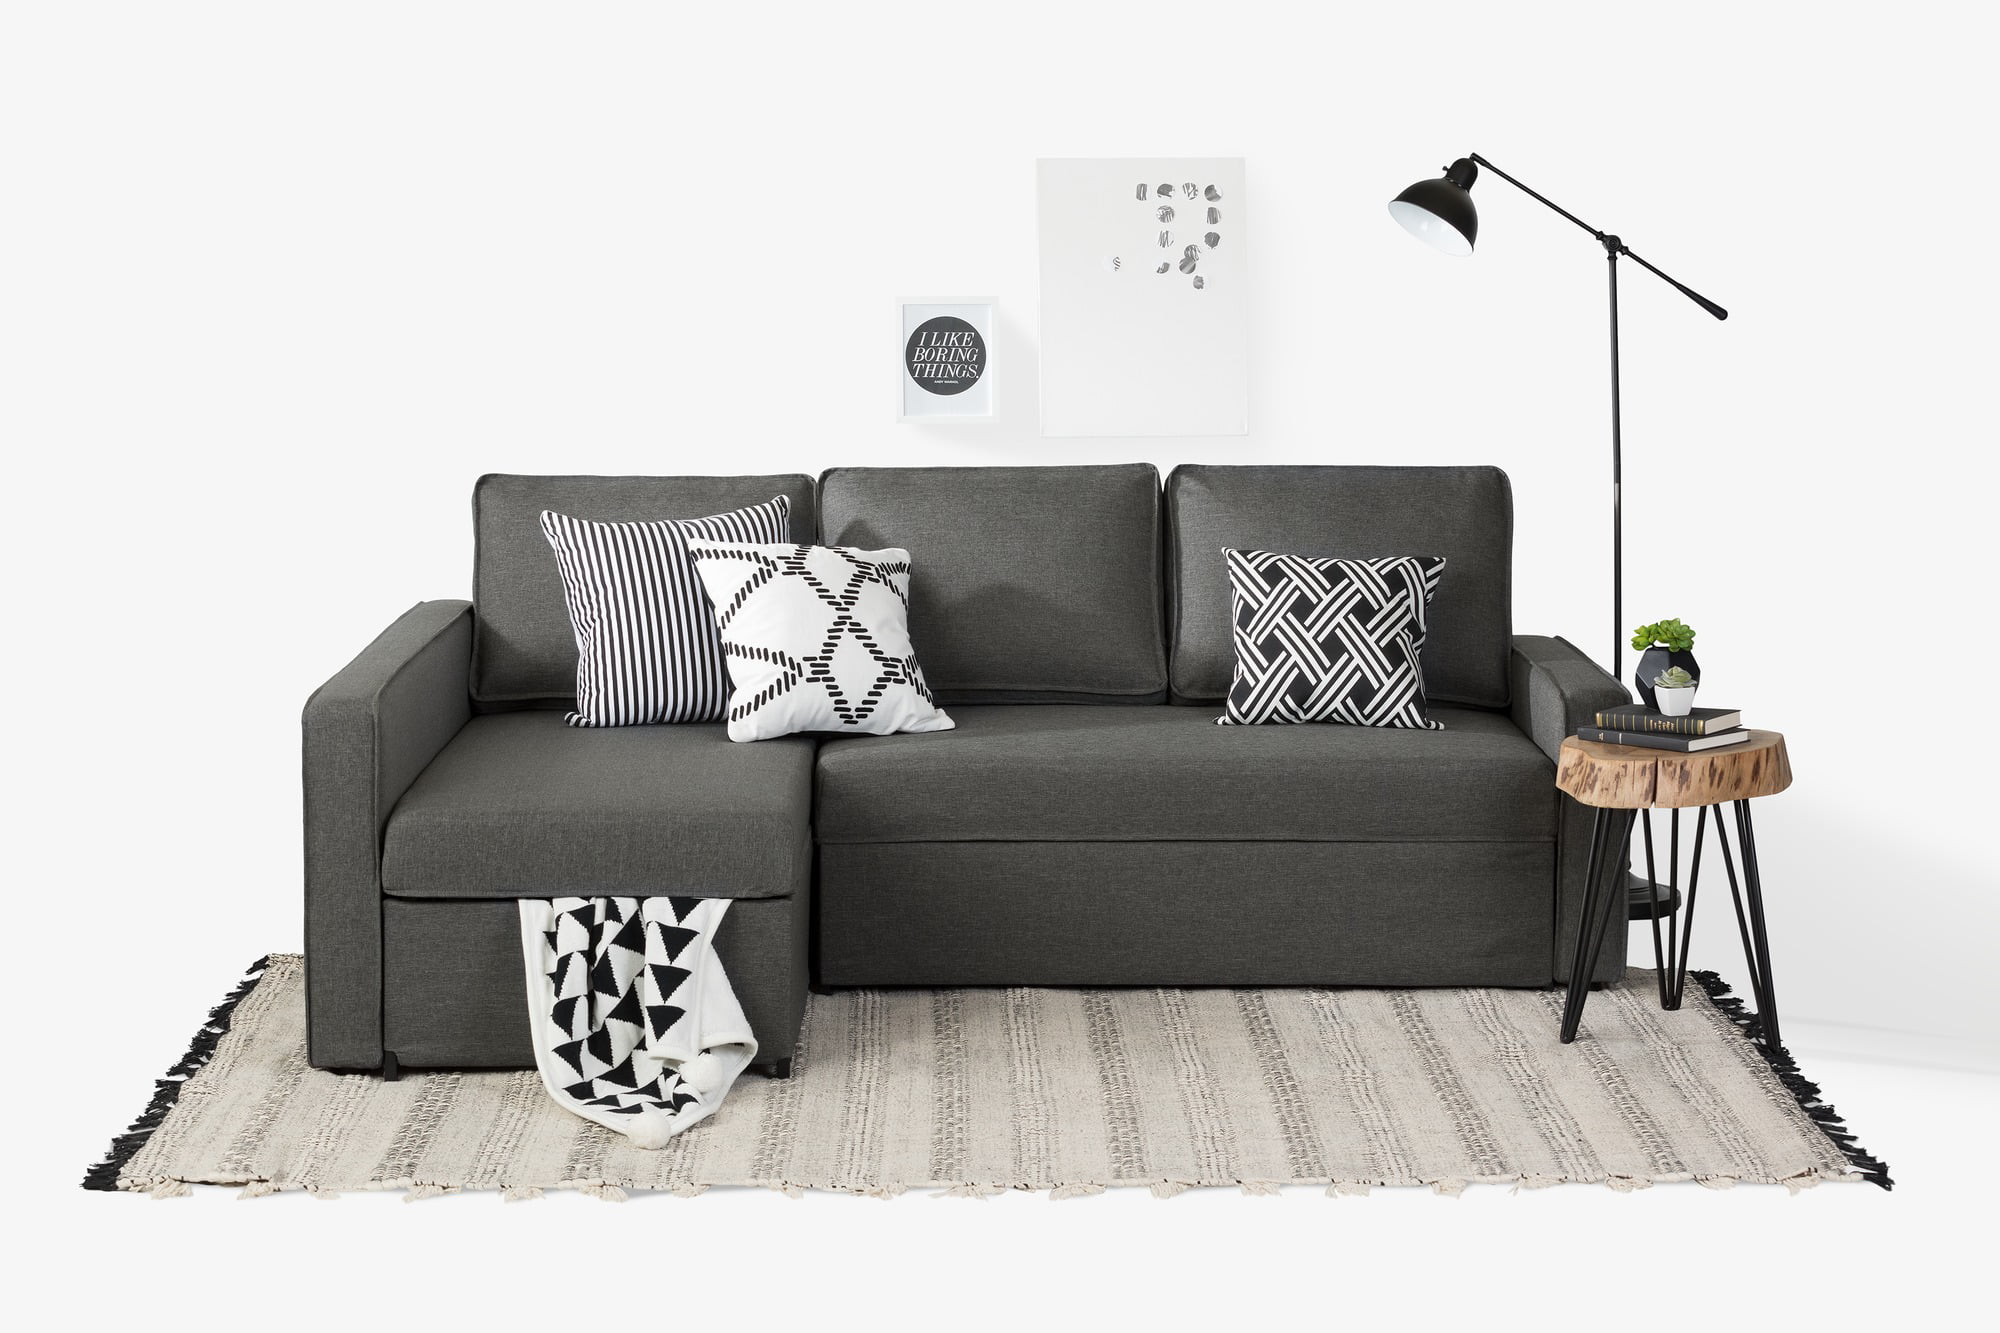 South shore live it cozy sectional sofa bed with storage multiple finishes walmart com